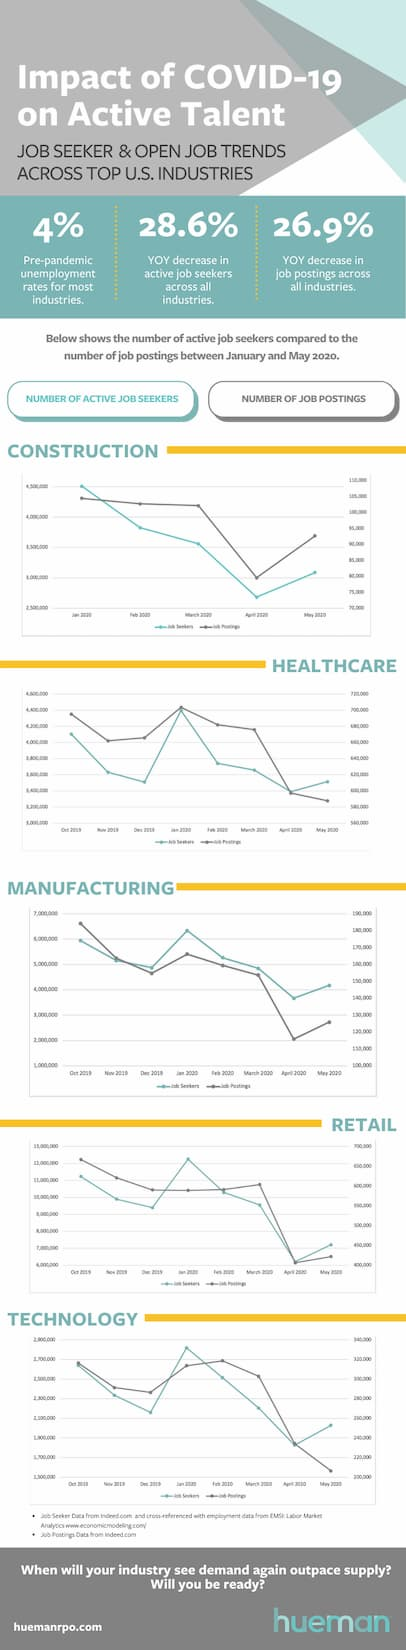 RPO Supply and Demand Infographic